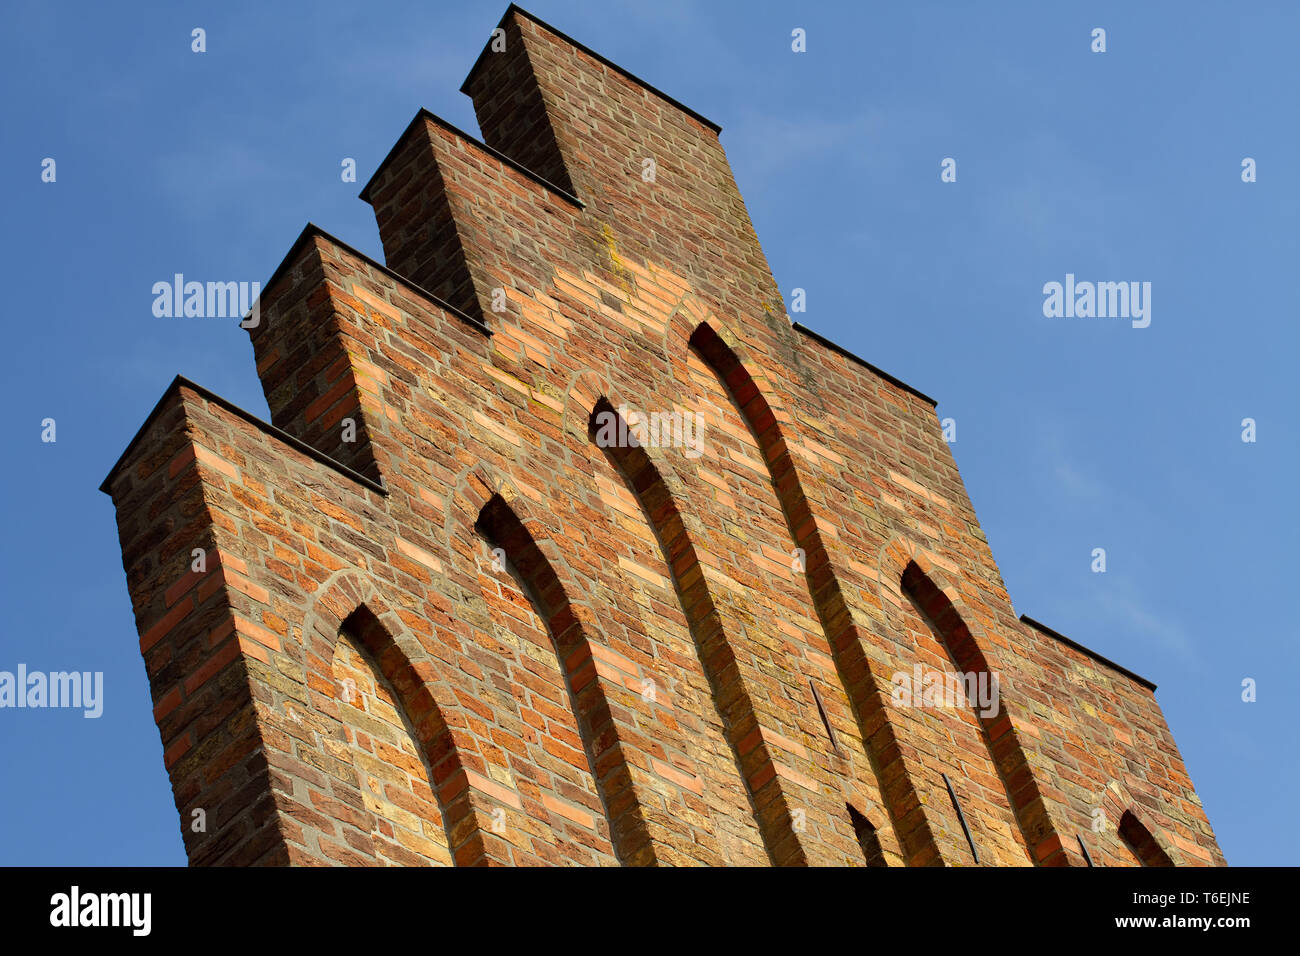 Schleswig Dome 004. Germany - Stock Image